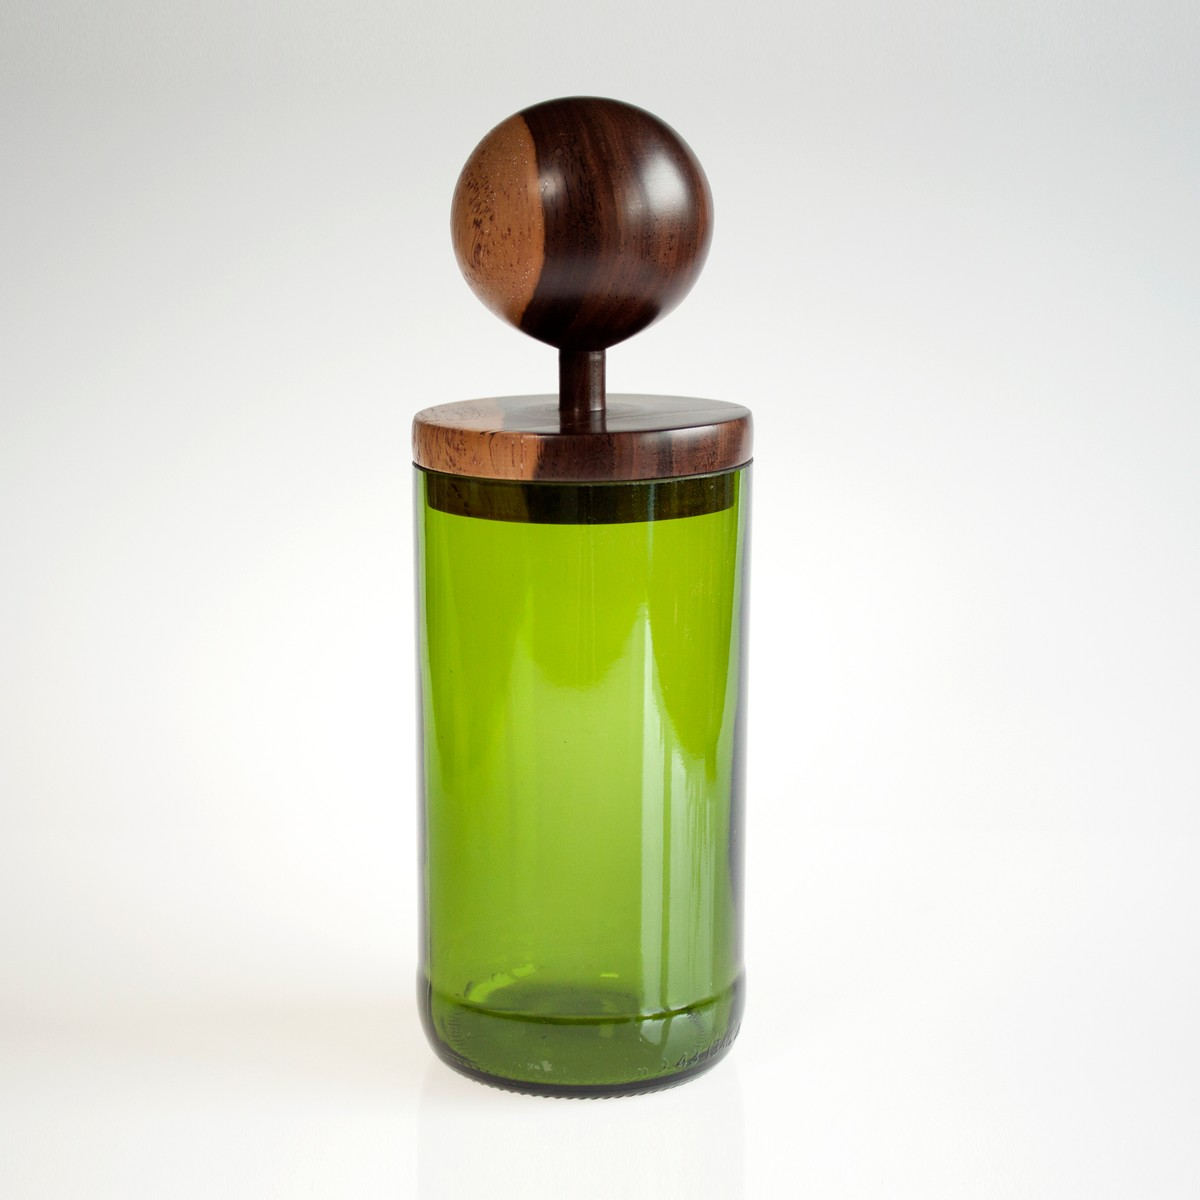 Photo of Sphere Green MidMod Jar